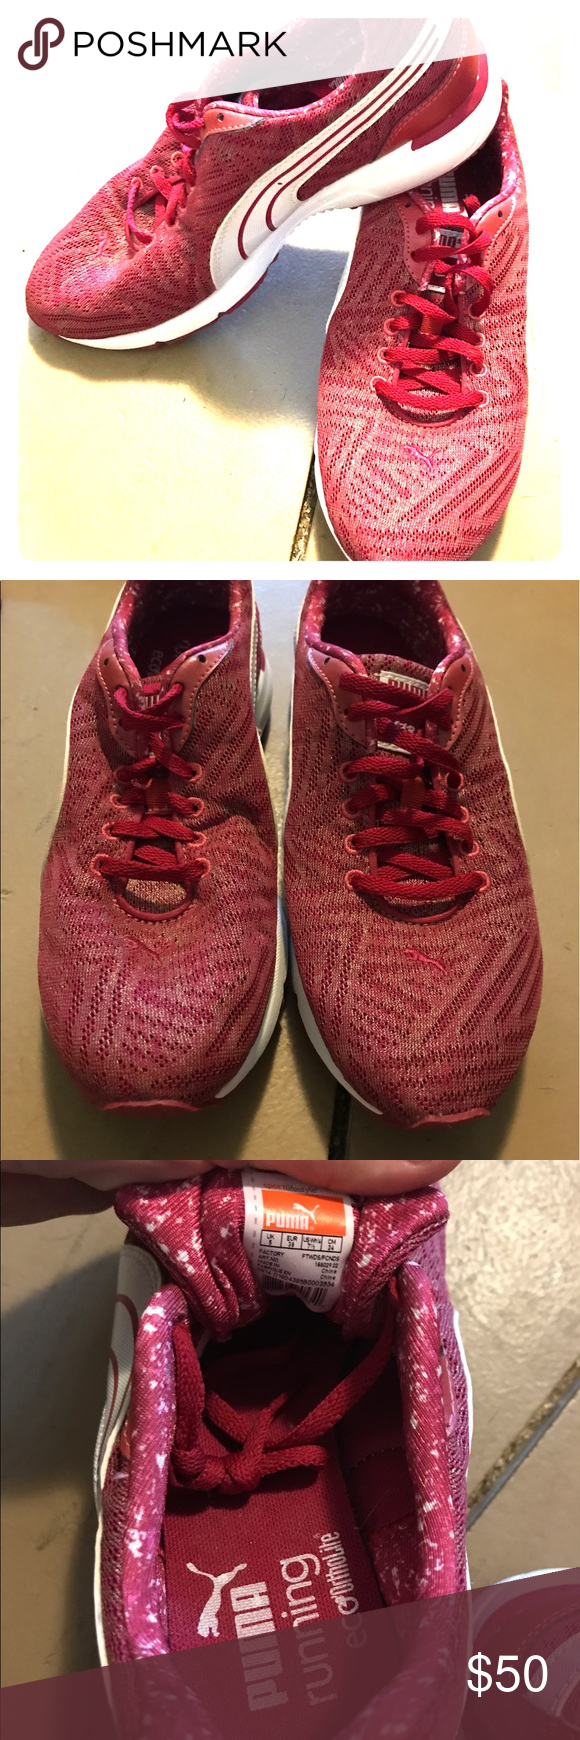 68be4eccd5d4 Puma Red Running Shoes 7.5